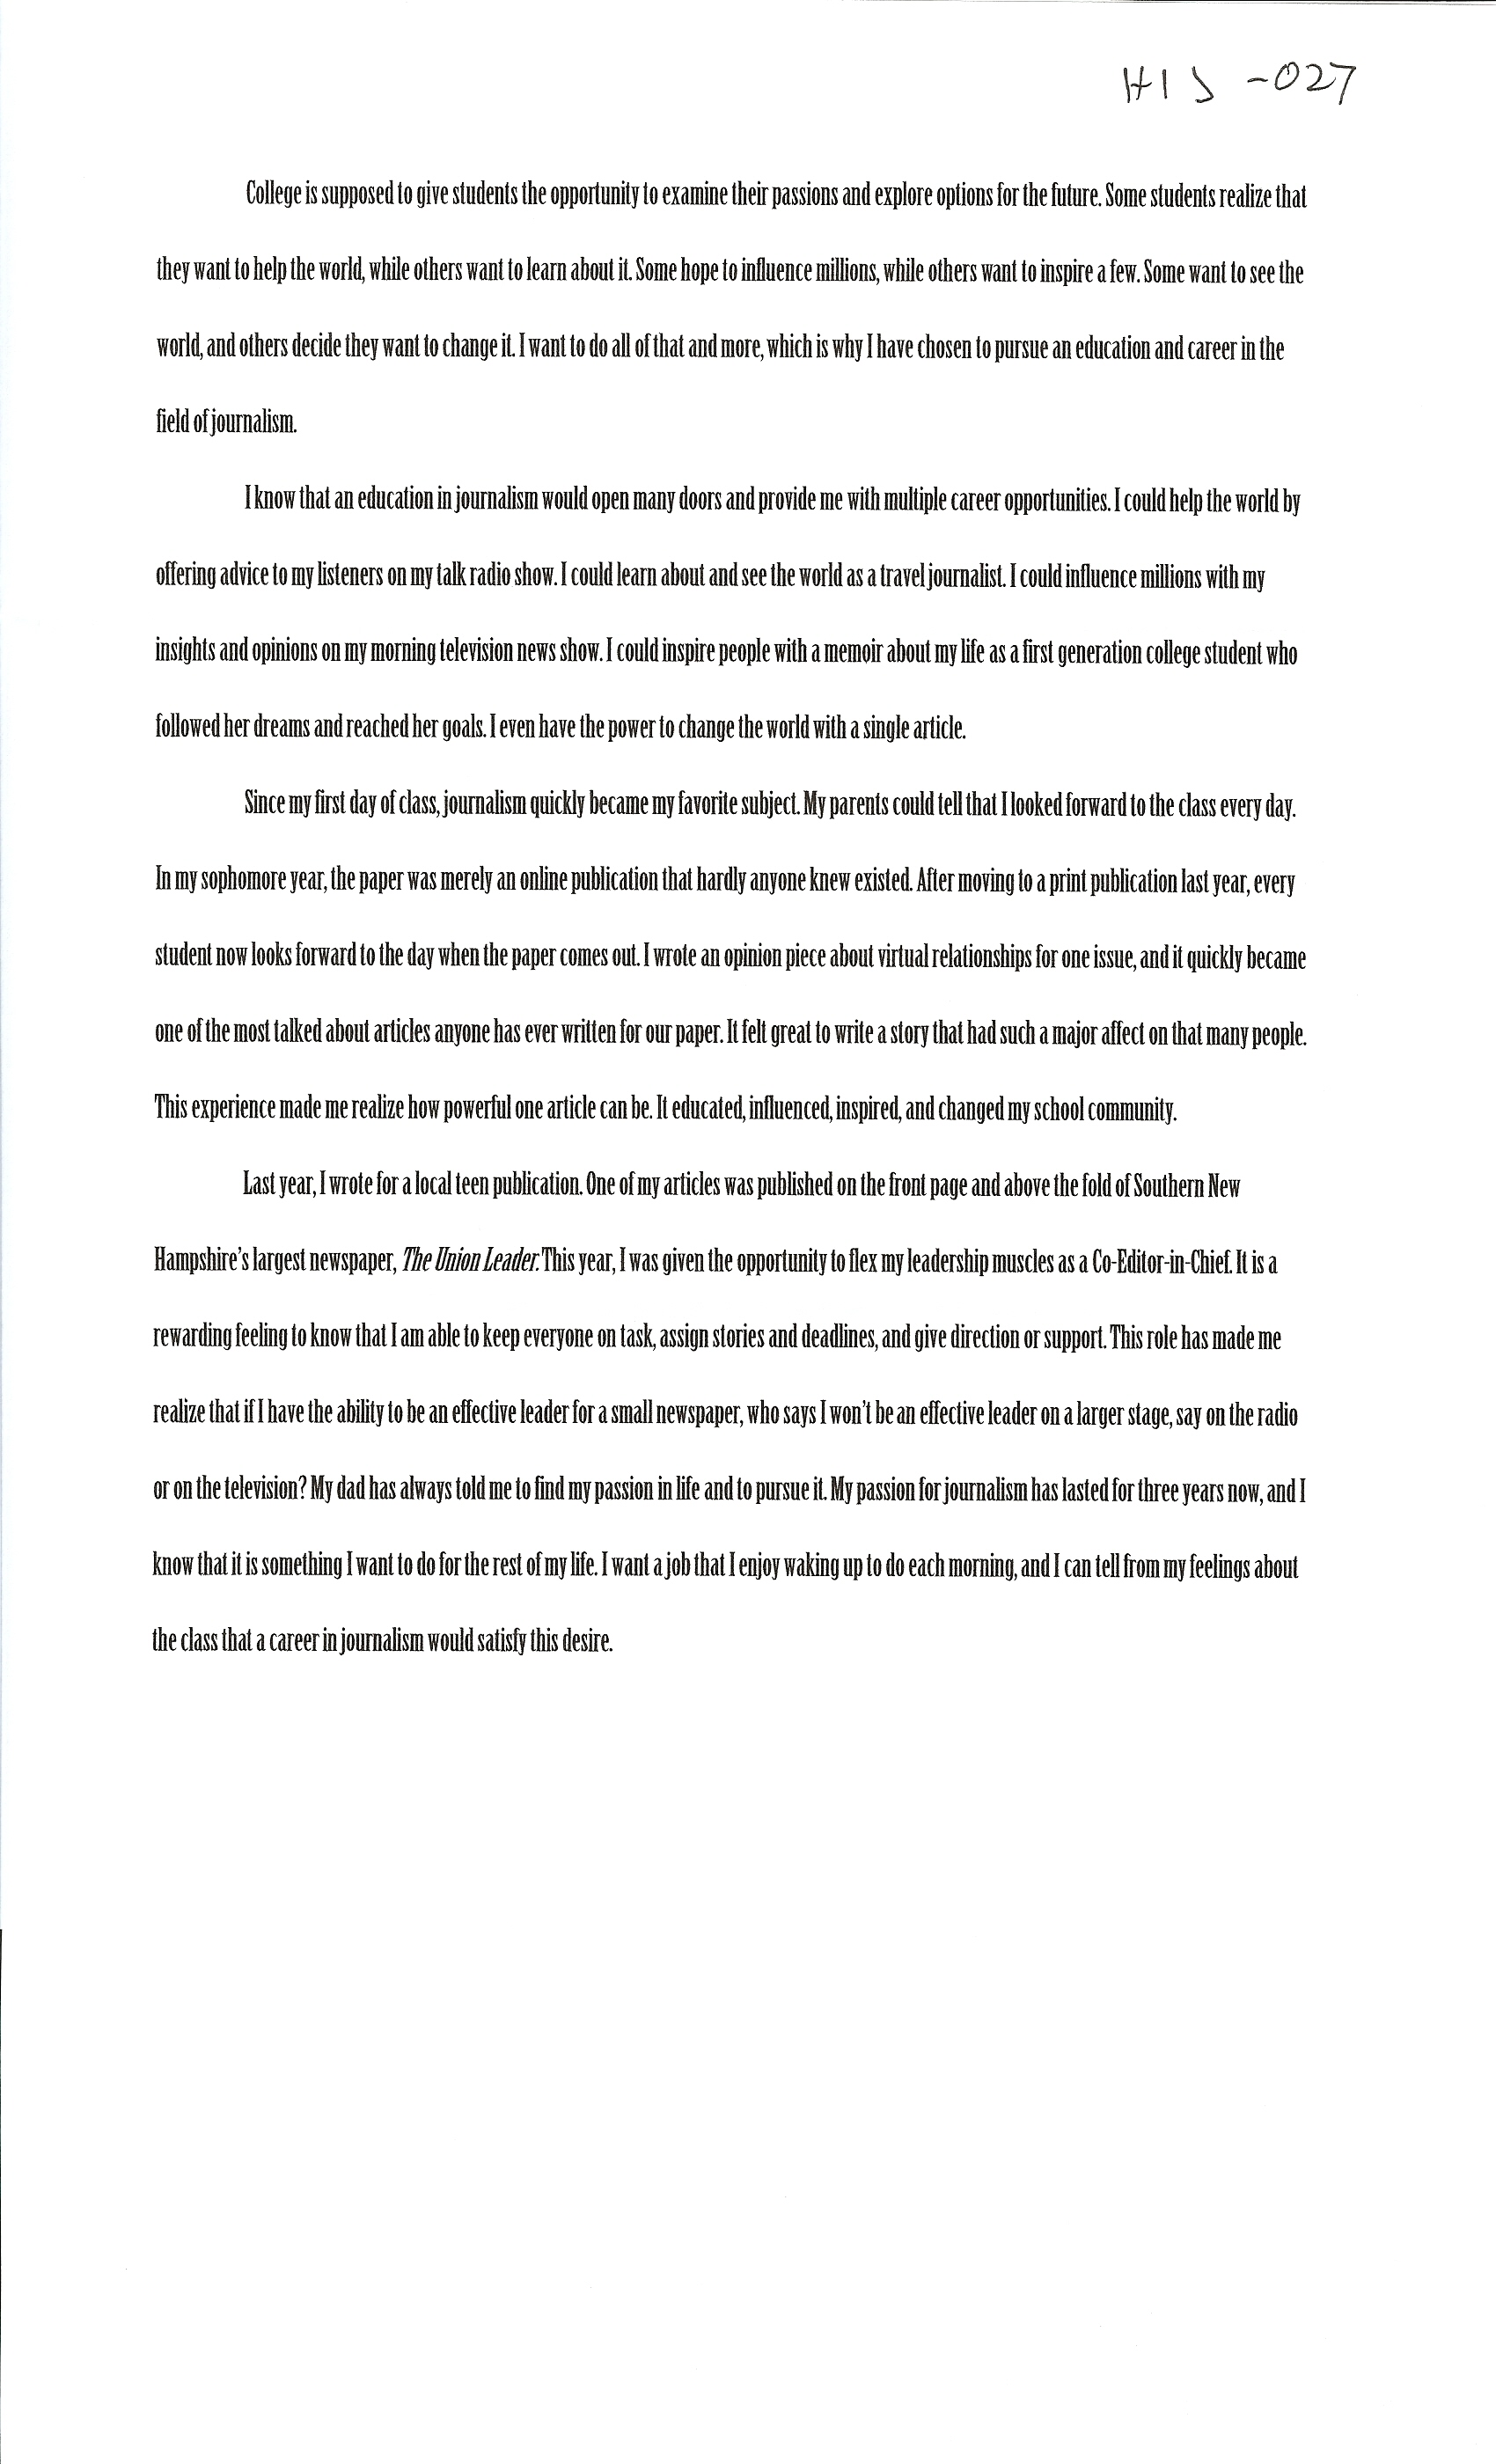 009 Examples Of Scholarship Essays Alexa Serrecchia Essay Remarkable For Nursing Writing College Students A About Yourself Full